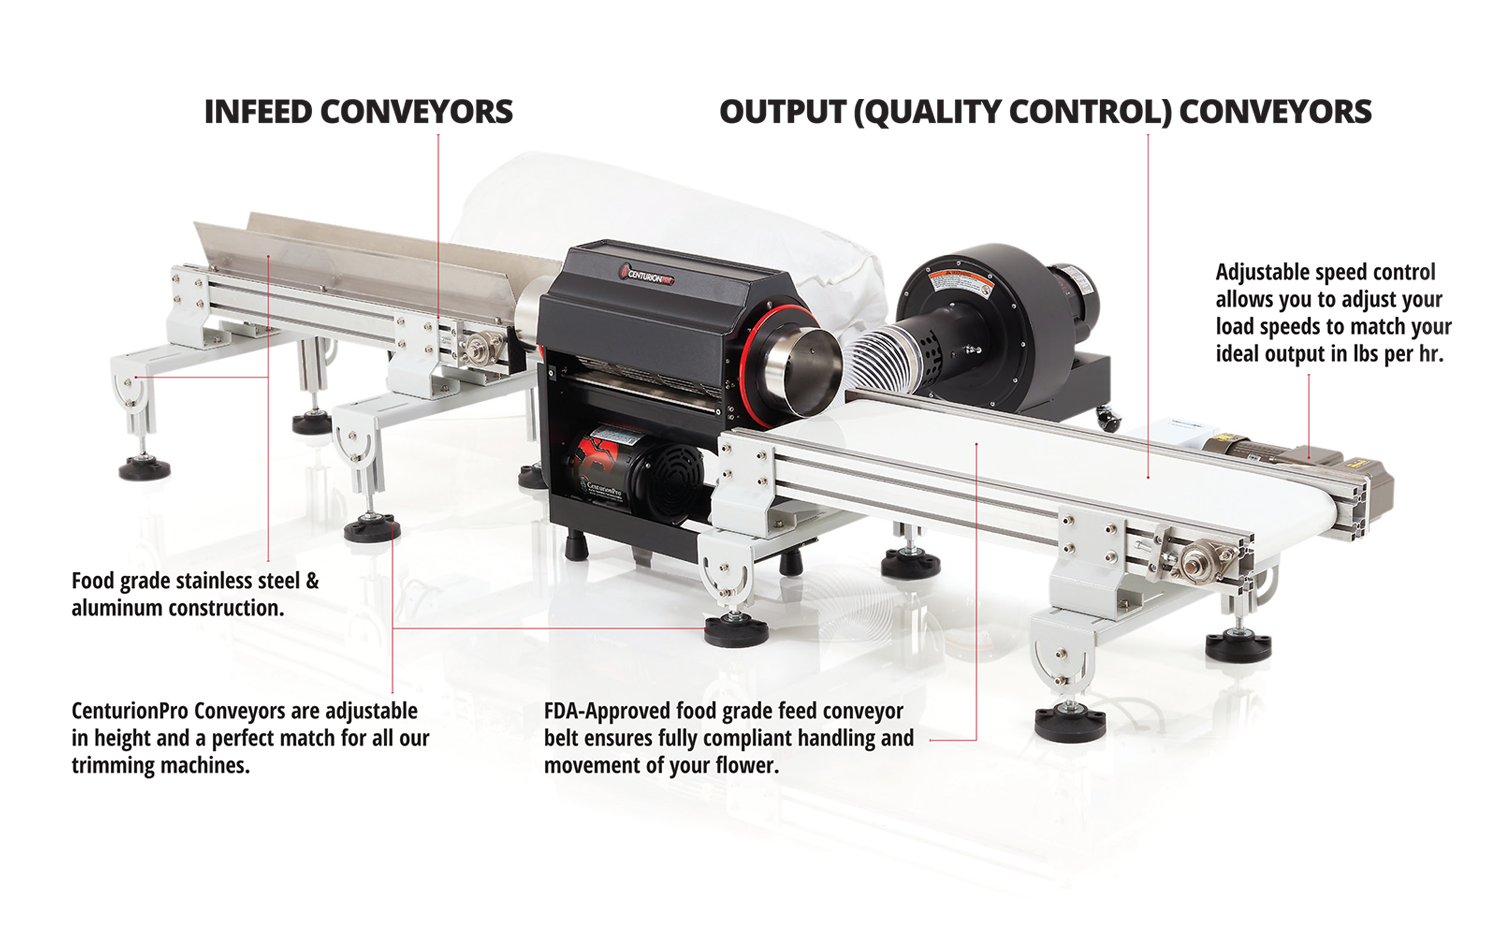 CenturionPro Mini Infeed & Quality Control Conveyor